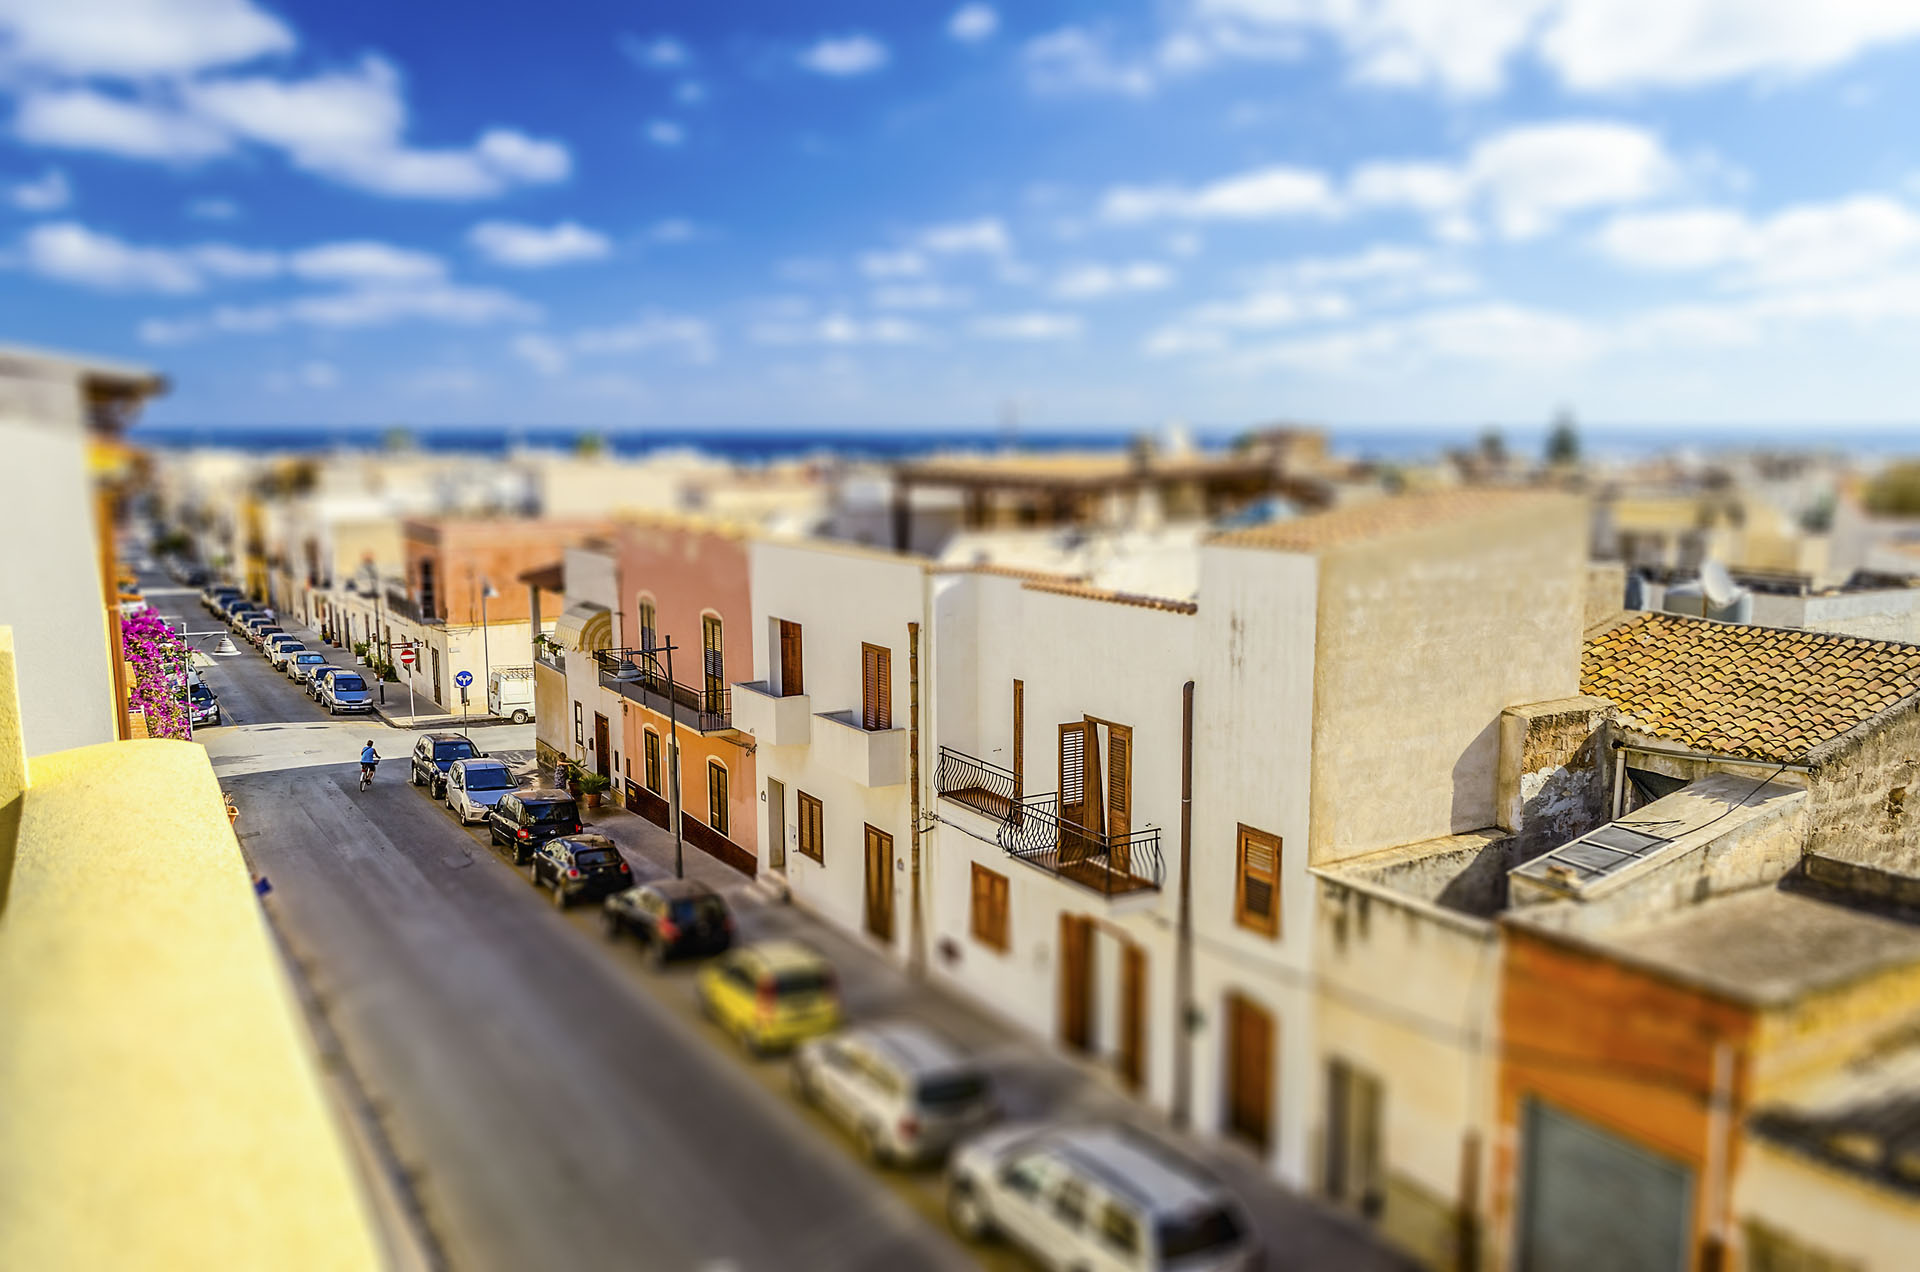 Aerial view, San Vito Lo Capo, Italy. Tilt-shift effect applied